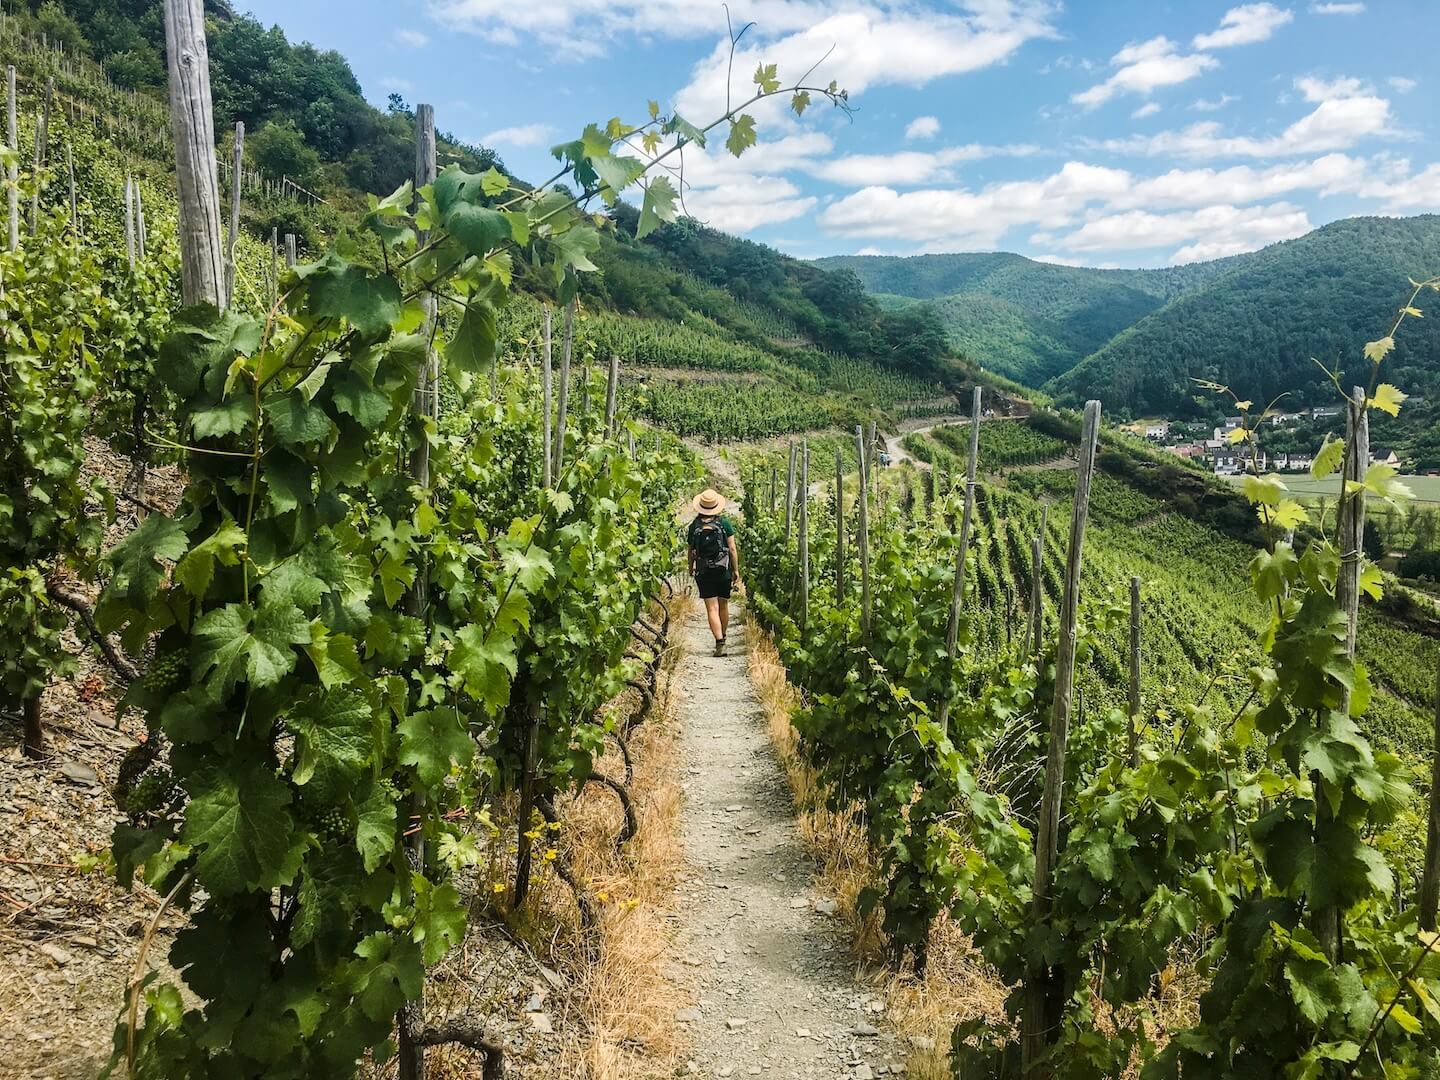 Hiking the Red Wine Trail in Germany's Ahr Valley